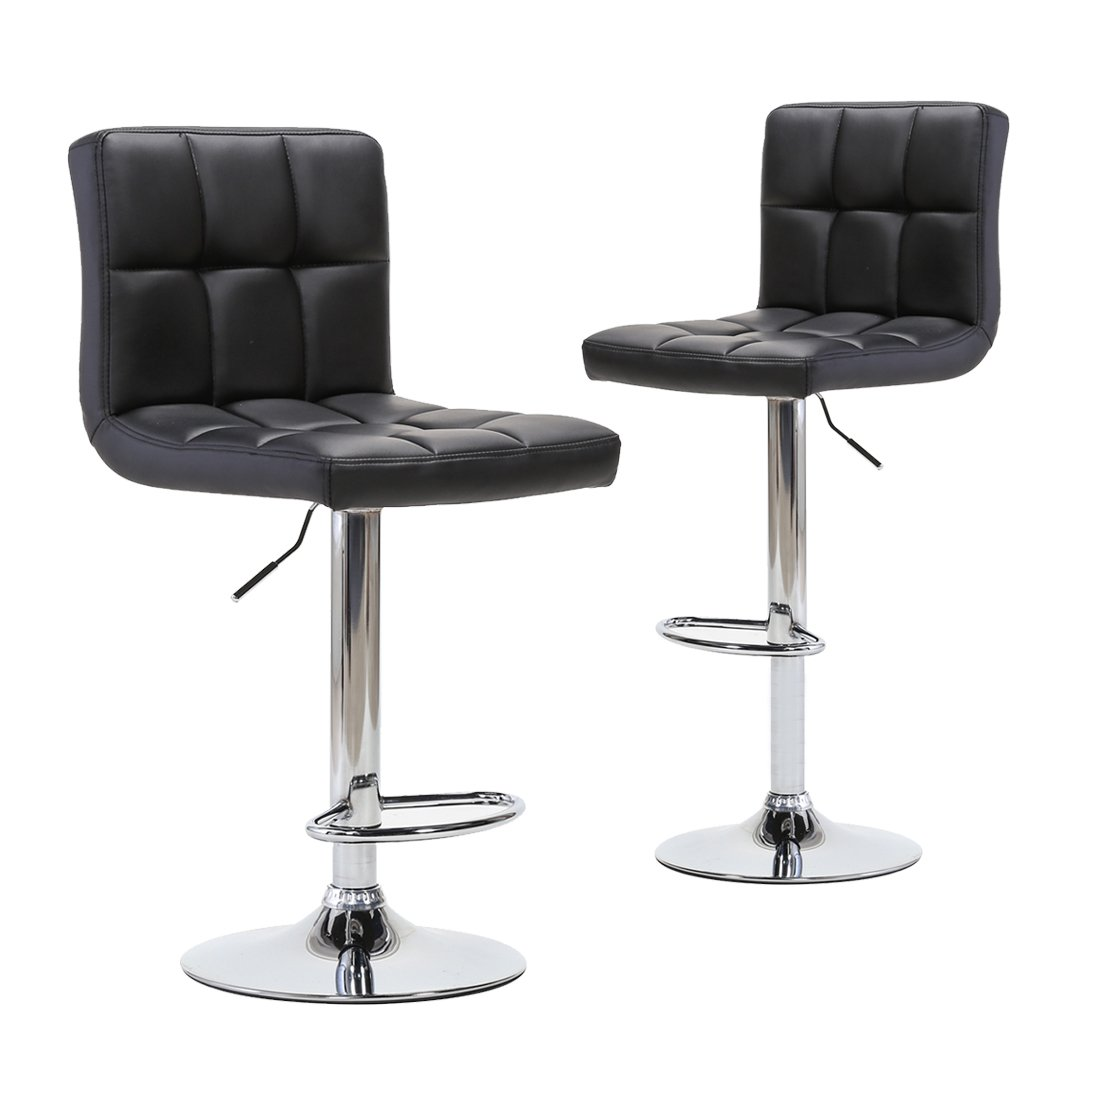 Adjustable Modern Swivel Bar Stools - Counter Height PU Leather Chair for Pub Kitchen by Chiming - ( Set of 2, Black )